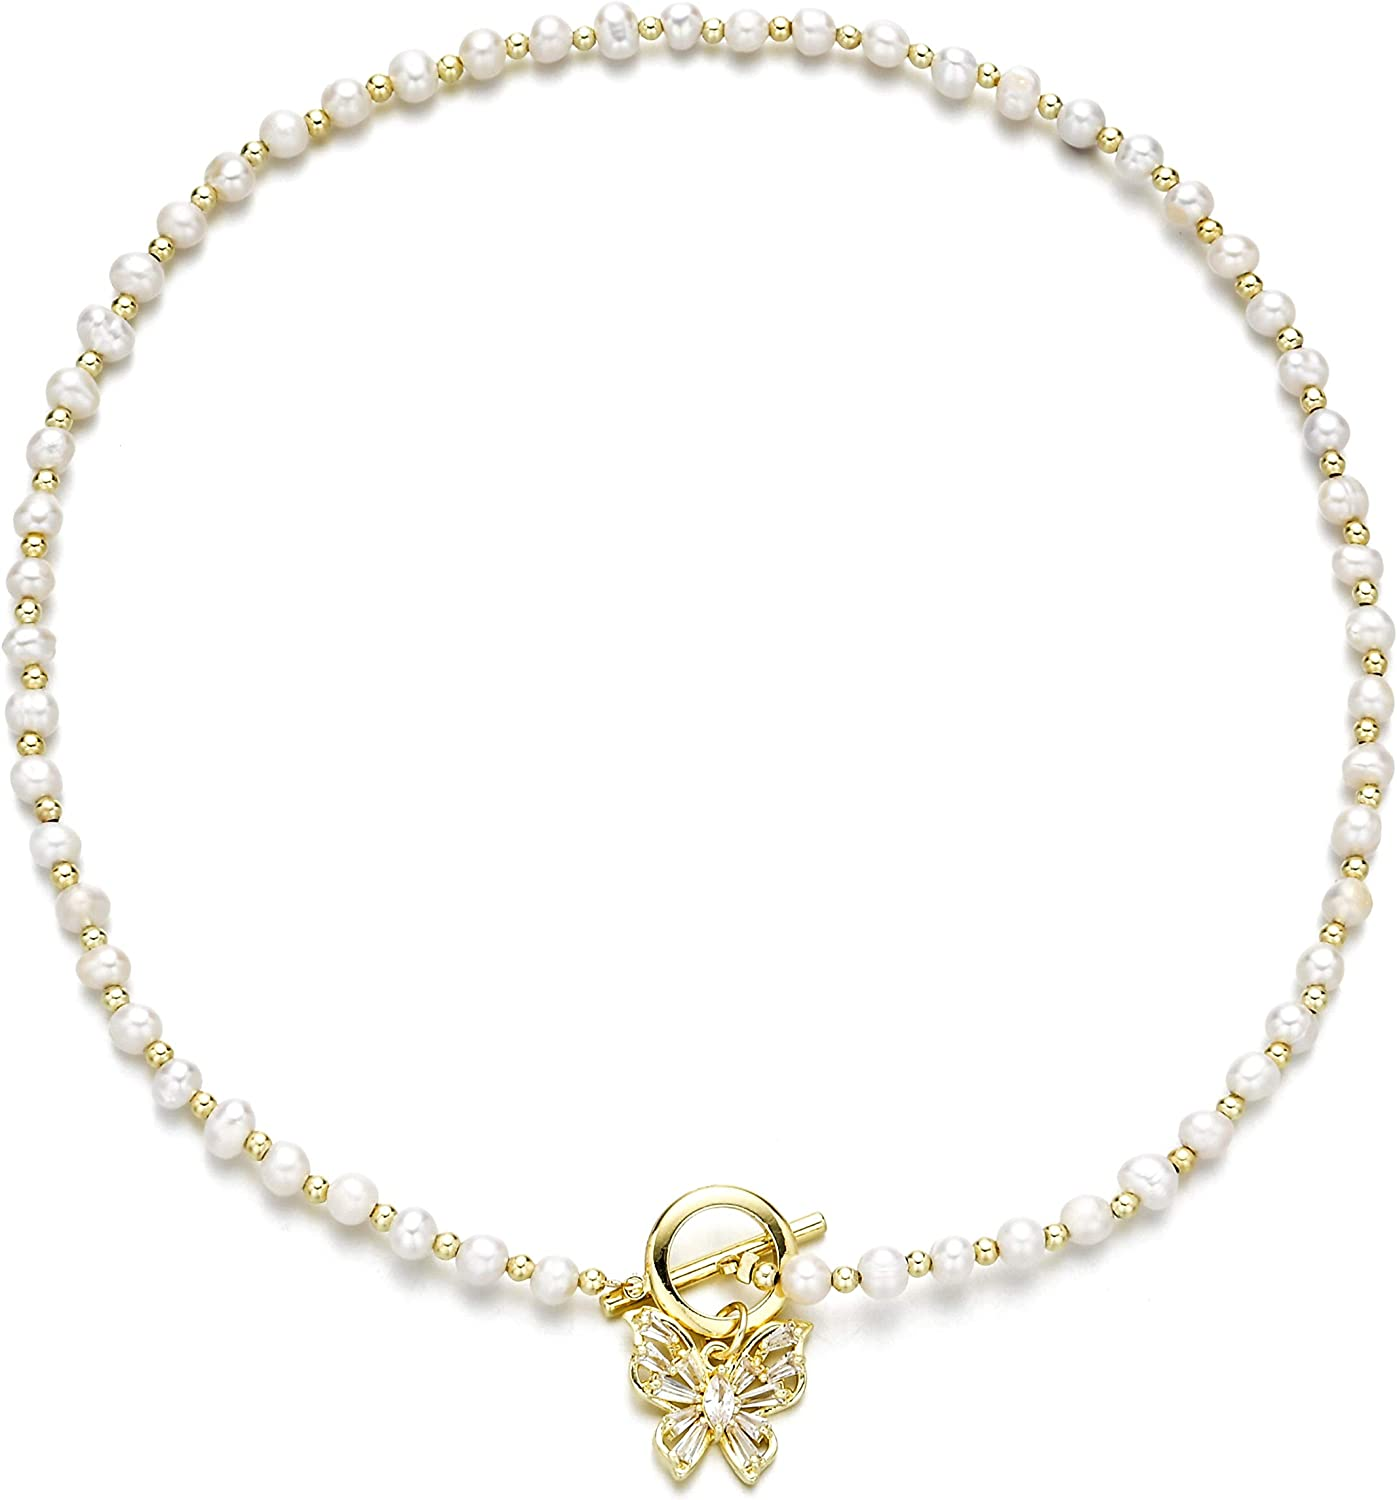 WWBGINF Butterfly Price reduction Choker 14K Gold Zirconia with Pendants Plated Latest item